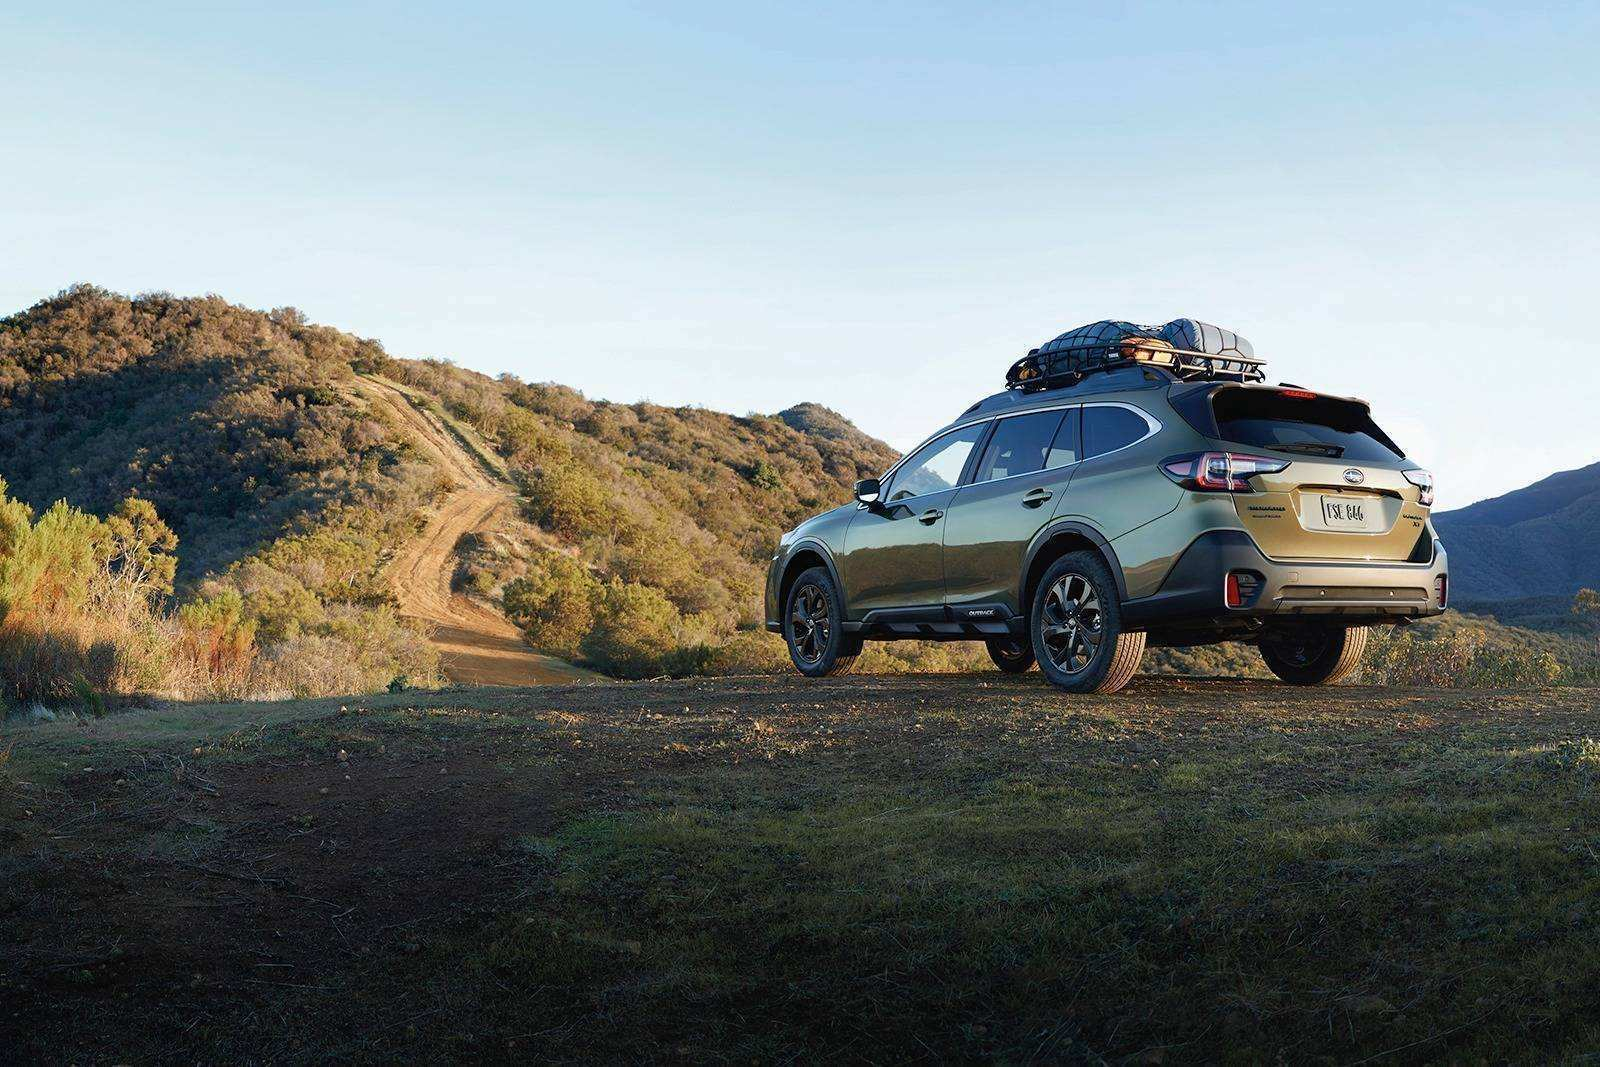 69 All New 2020 Subaru Outback Ground Clearance Model